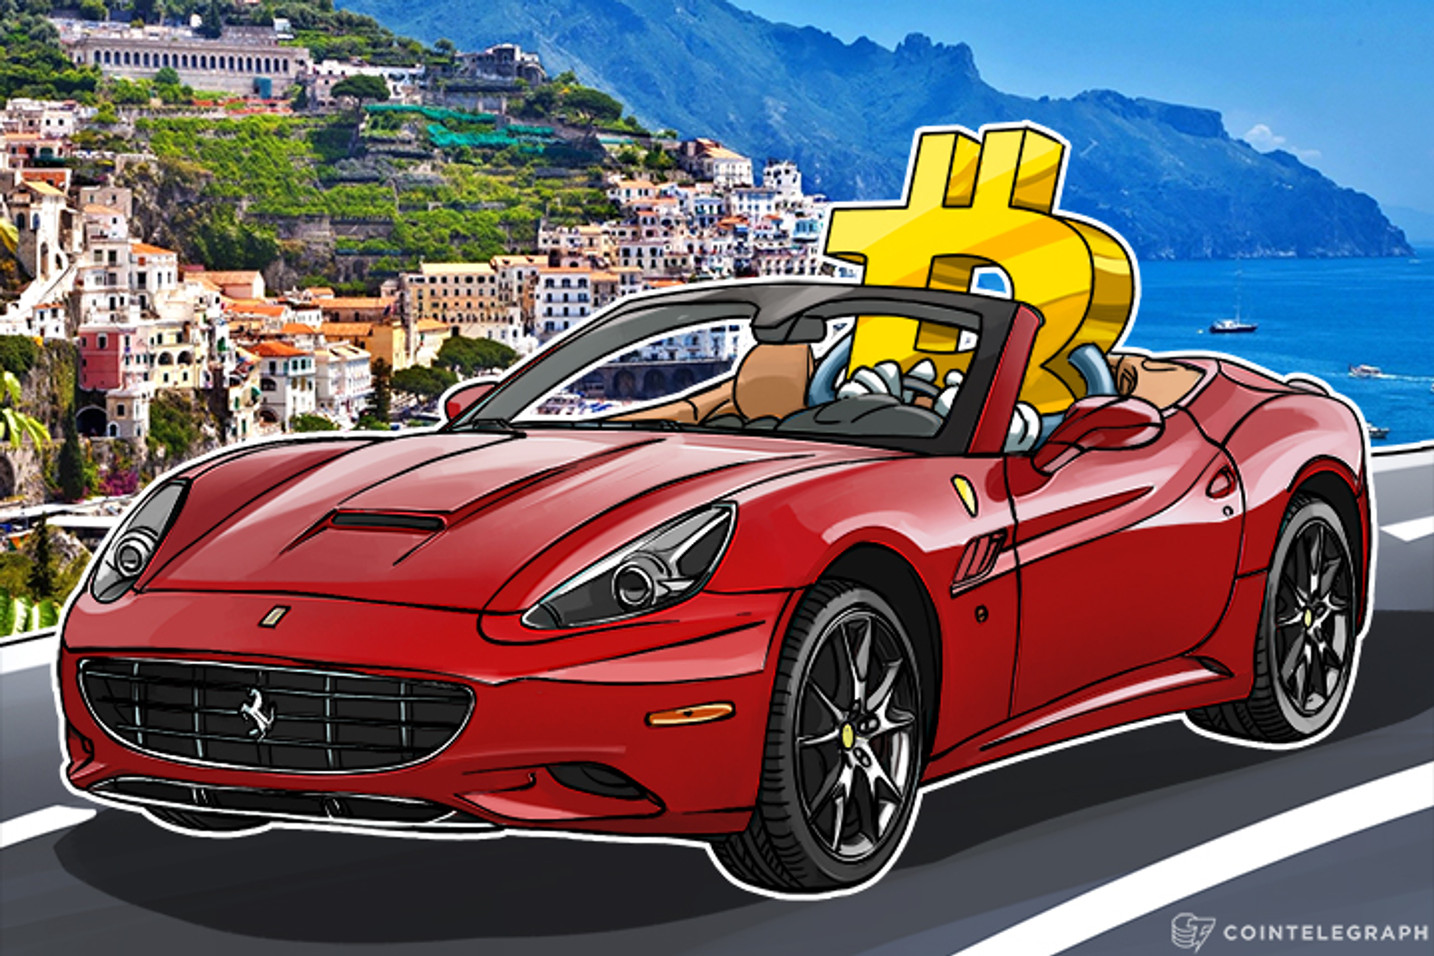 Italy Wants to Treat Bitcoin as Currency And Tax It